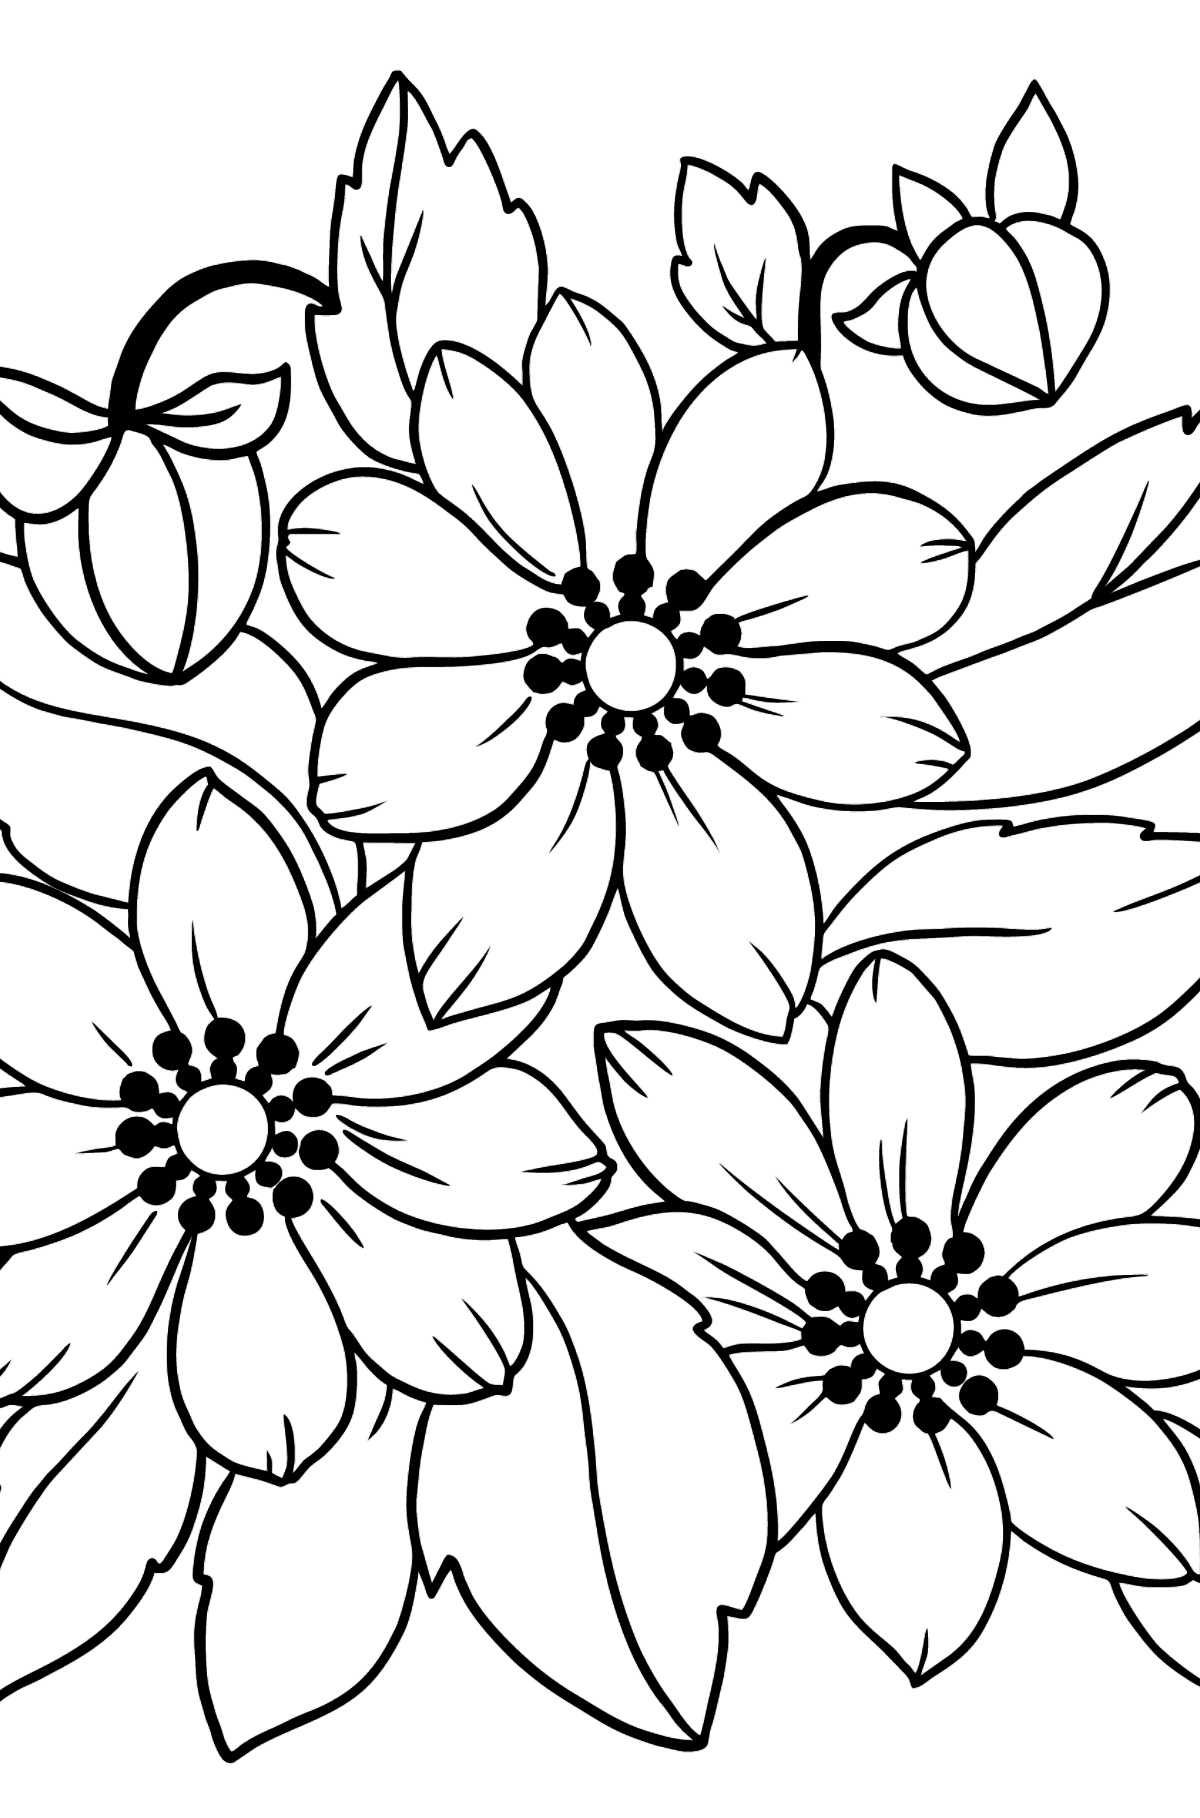 Flower Coloring Page - Anemone - Coloring Pages for Kids